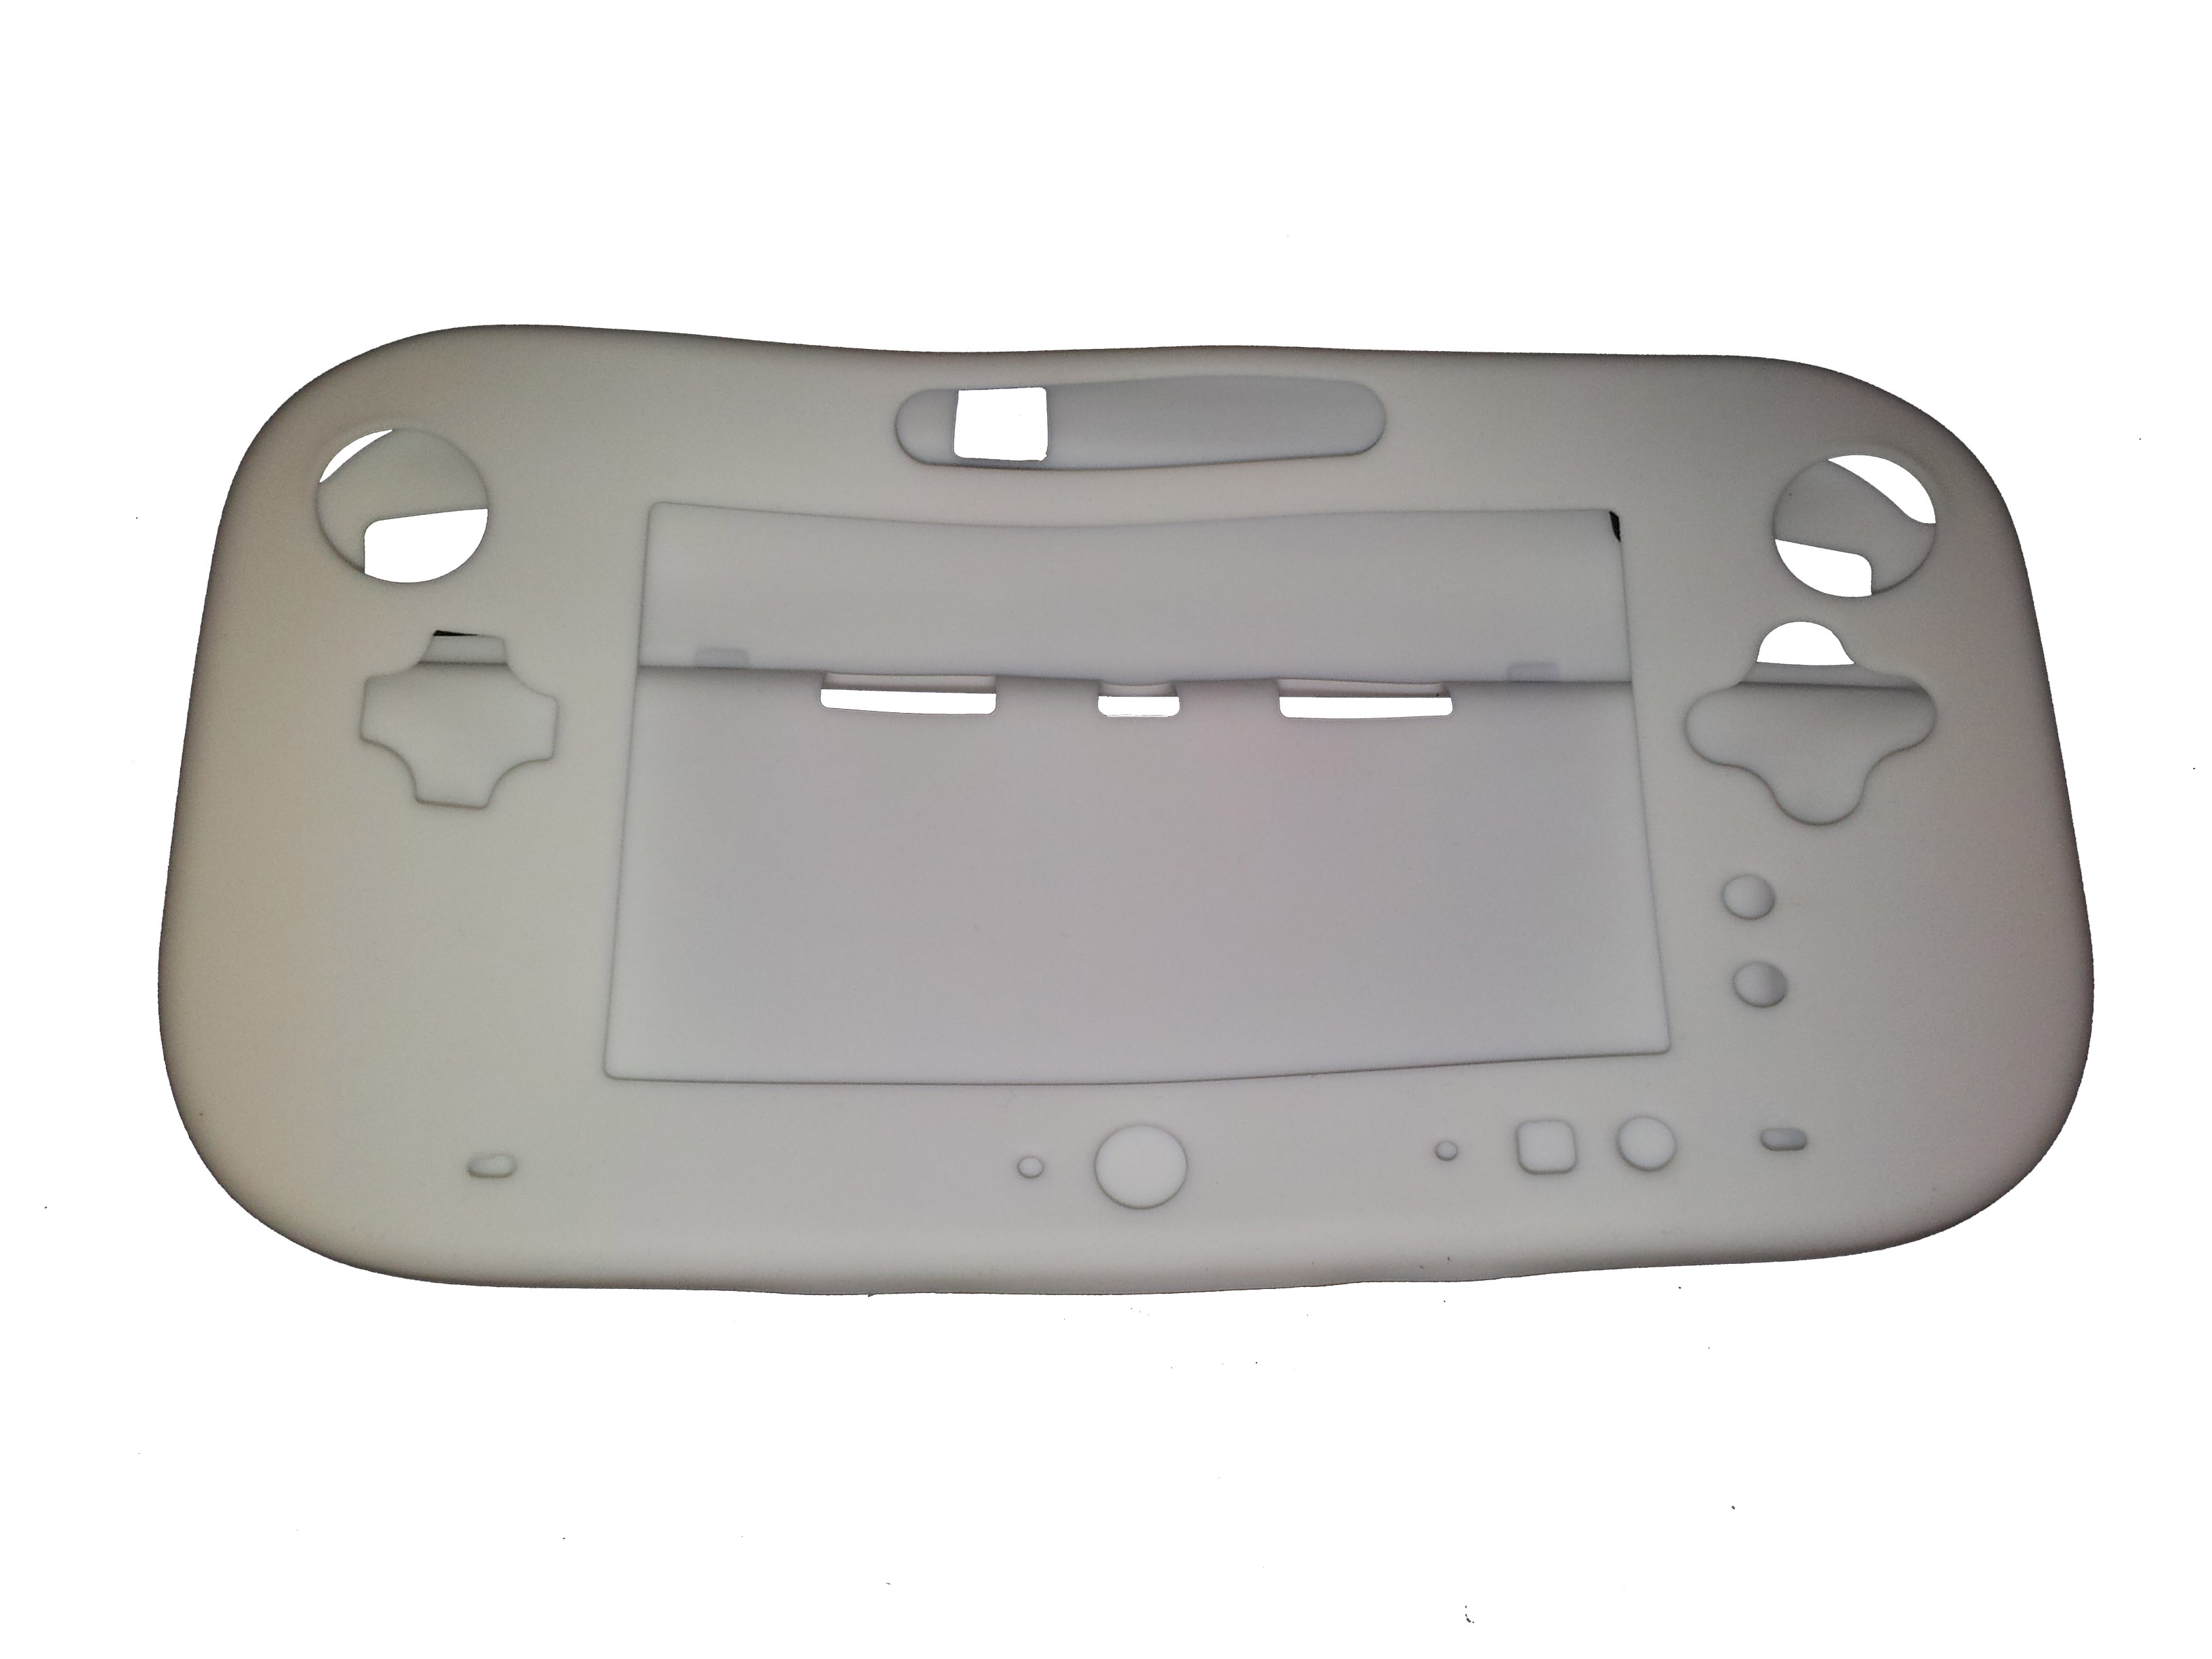 Soft Silicone Cover for Nintendo Wii U Gamepad Controller Protective Case - White